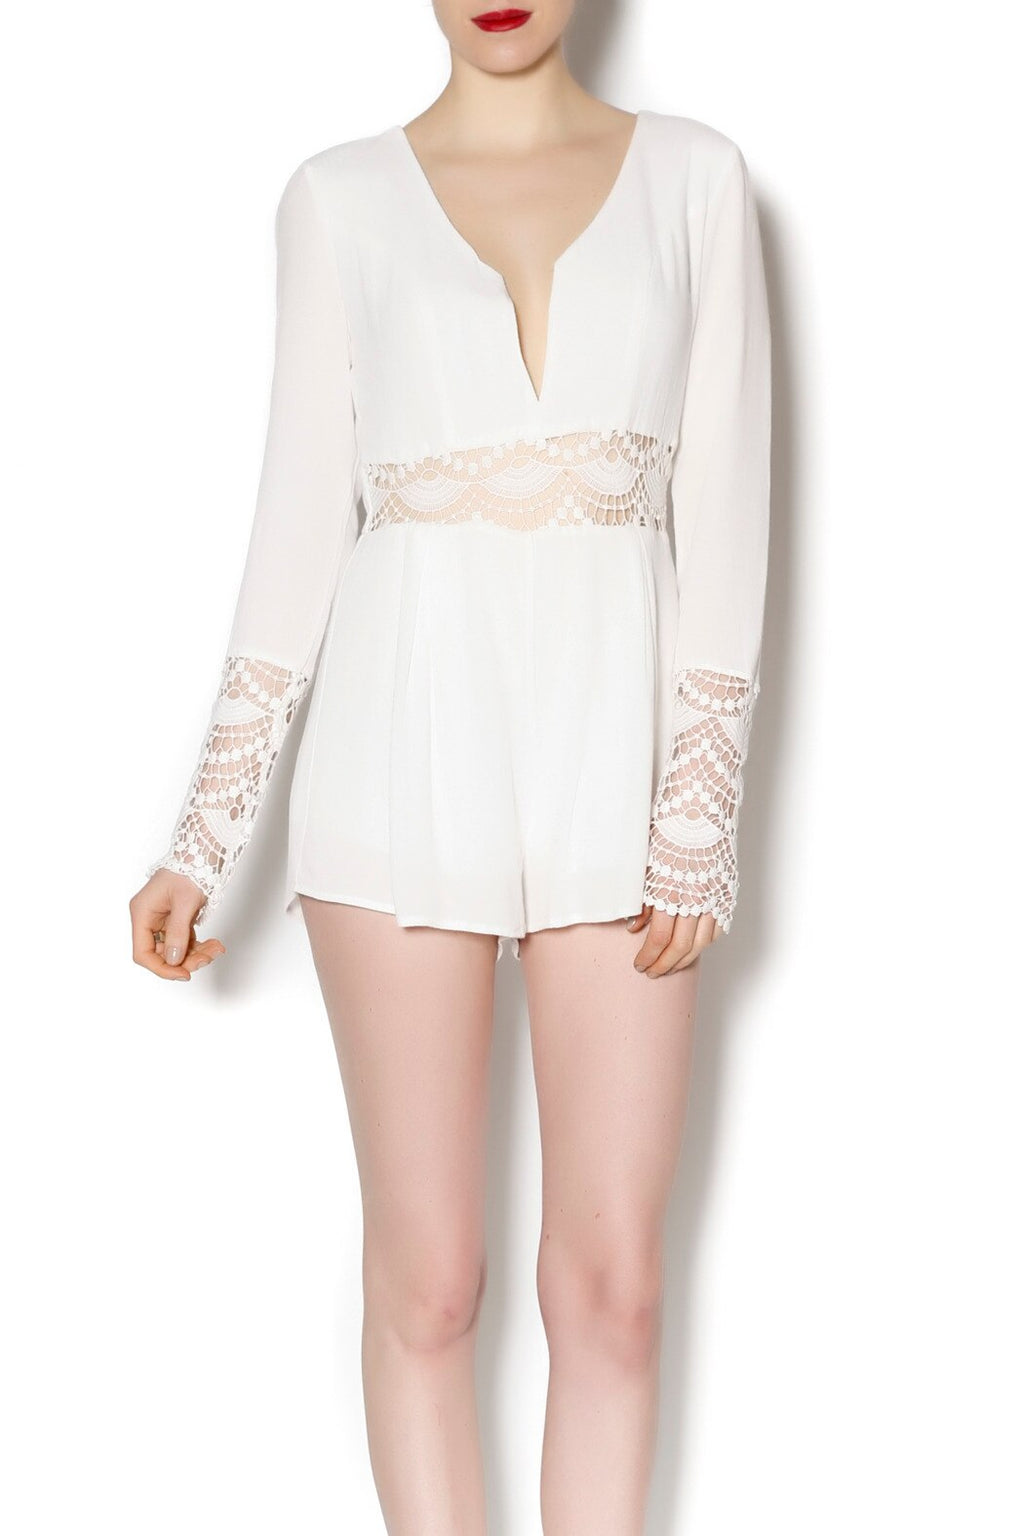 FINAL SALE - Honey Punch - Sheer Crochet Long Sleeve Romper in Ivory